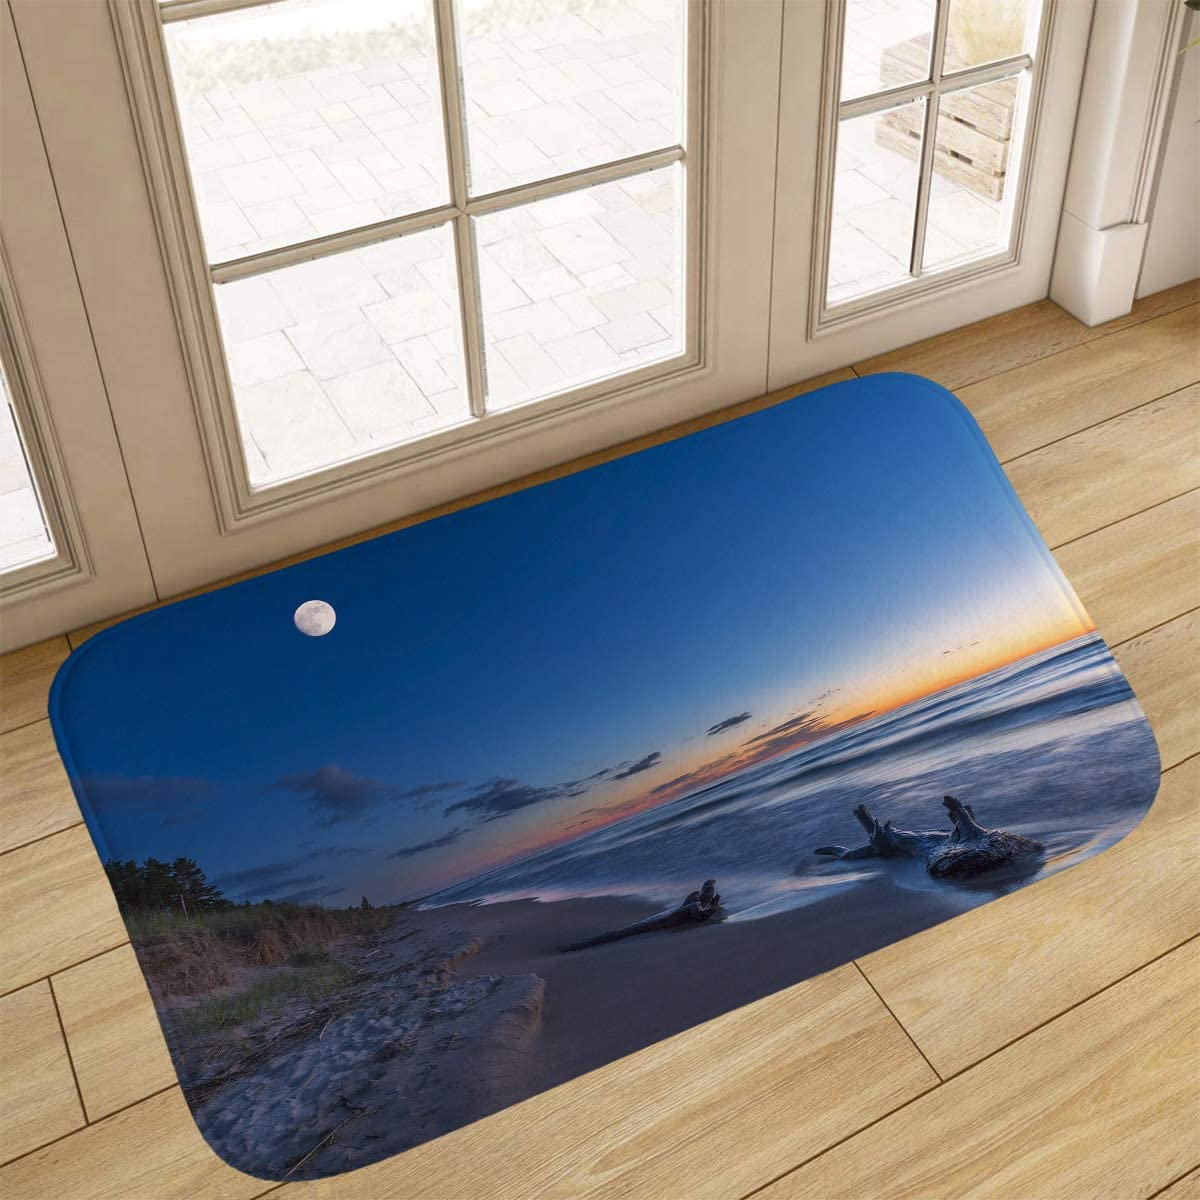 Y Heathfit Beach Bathroom Rugs, Doormat,Driftwood On A Lake Huron Beach at Twilight Grand Bend, Ontario, Canada,Home Decor Floor Carpet Bath Mat,18x47 in